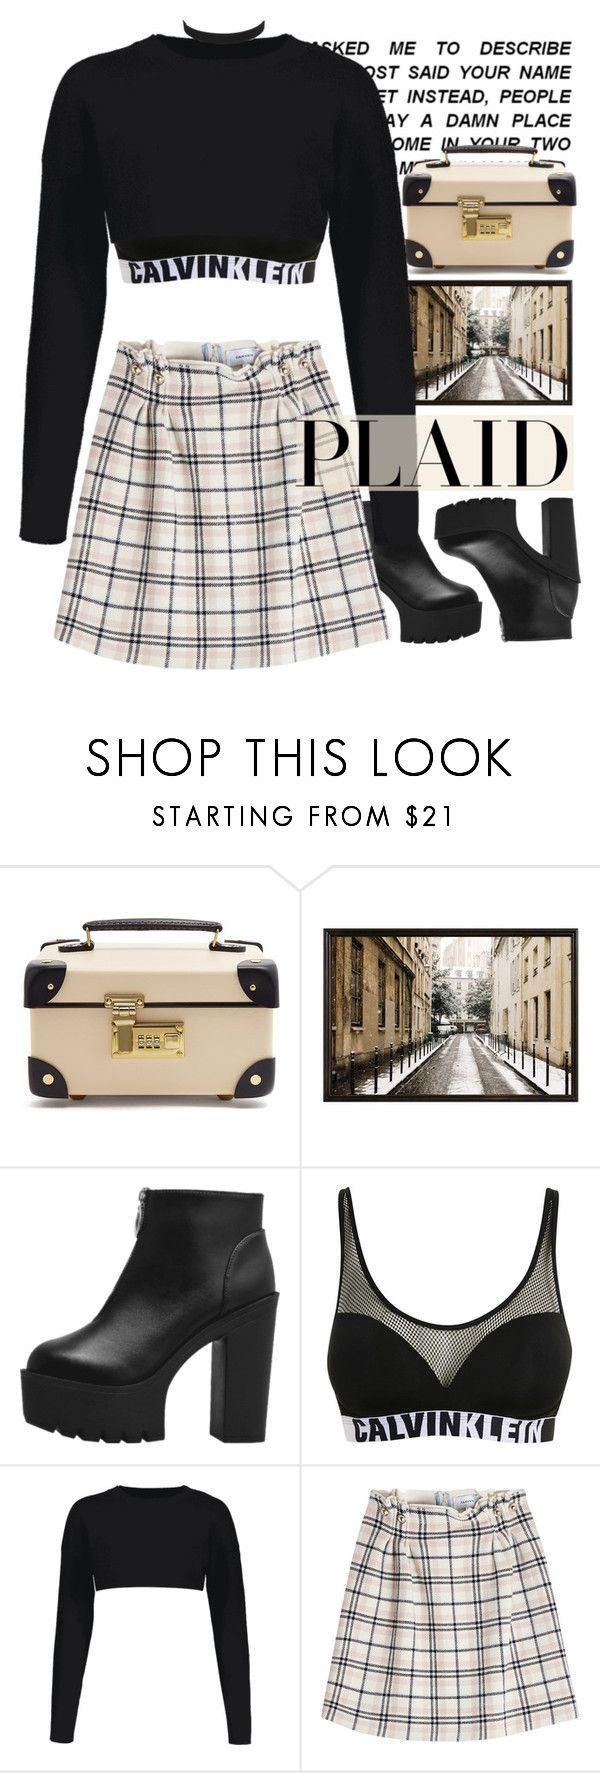 """""""Plaid skirt with ZAFUL"""" by holy-k17 ❤ liked on Polyvore featuring Globe-Trotter, Pottery Barn, Calvin Klein, Carven, plaid, autumn and zaful"""